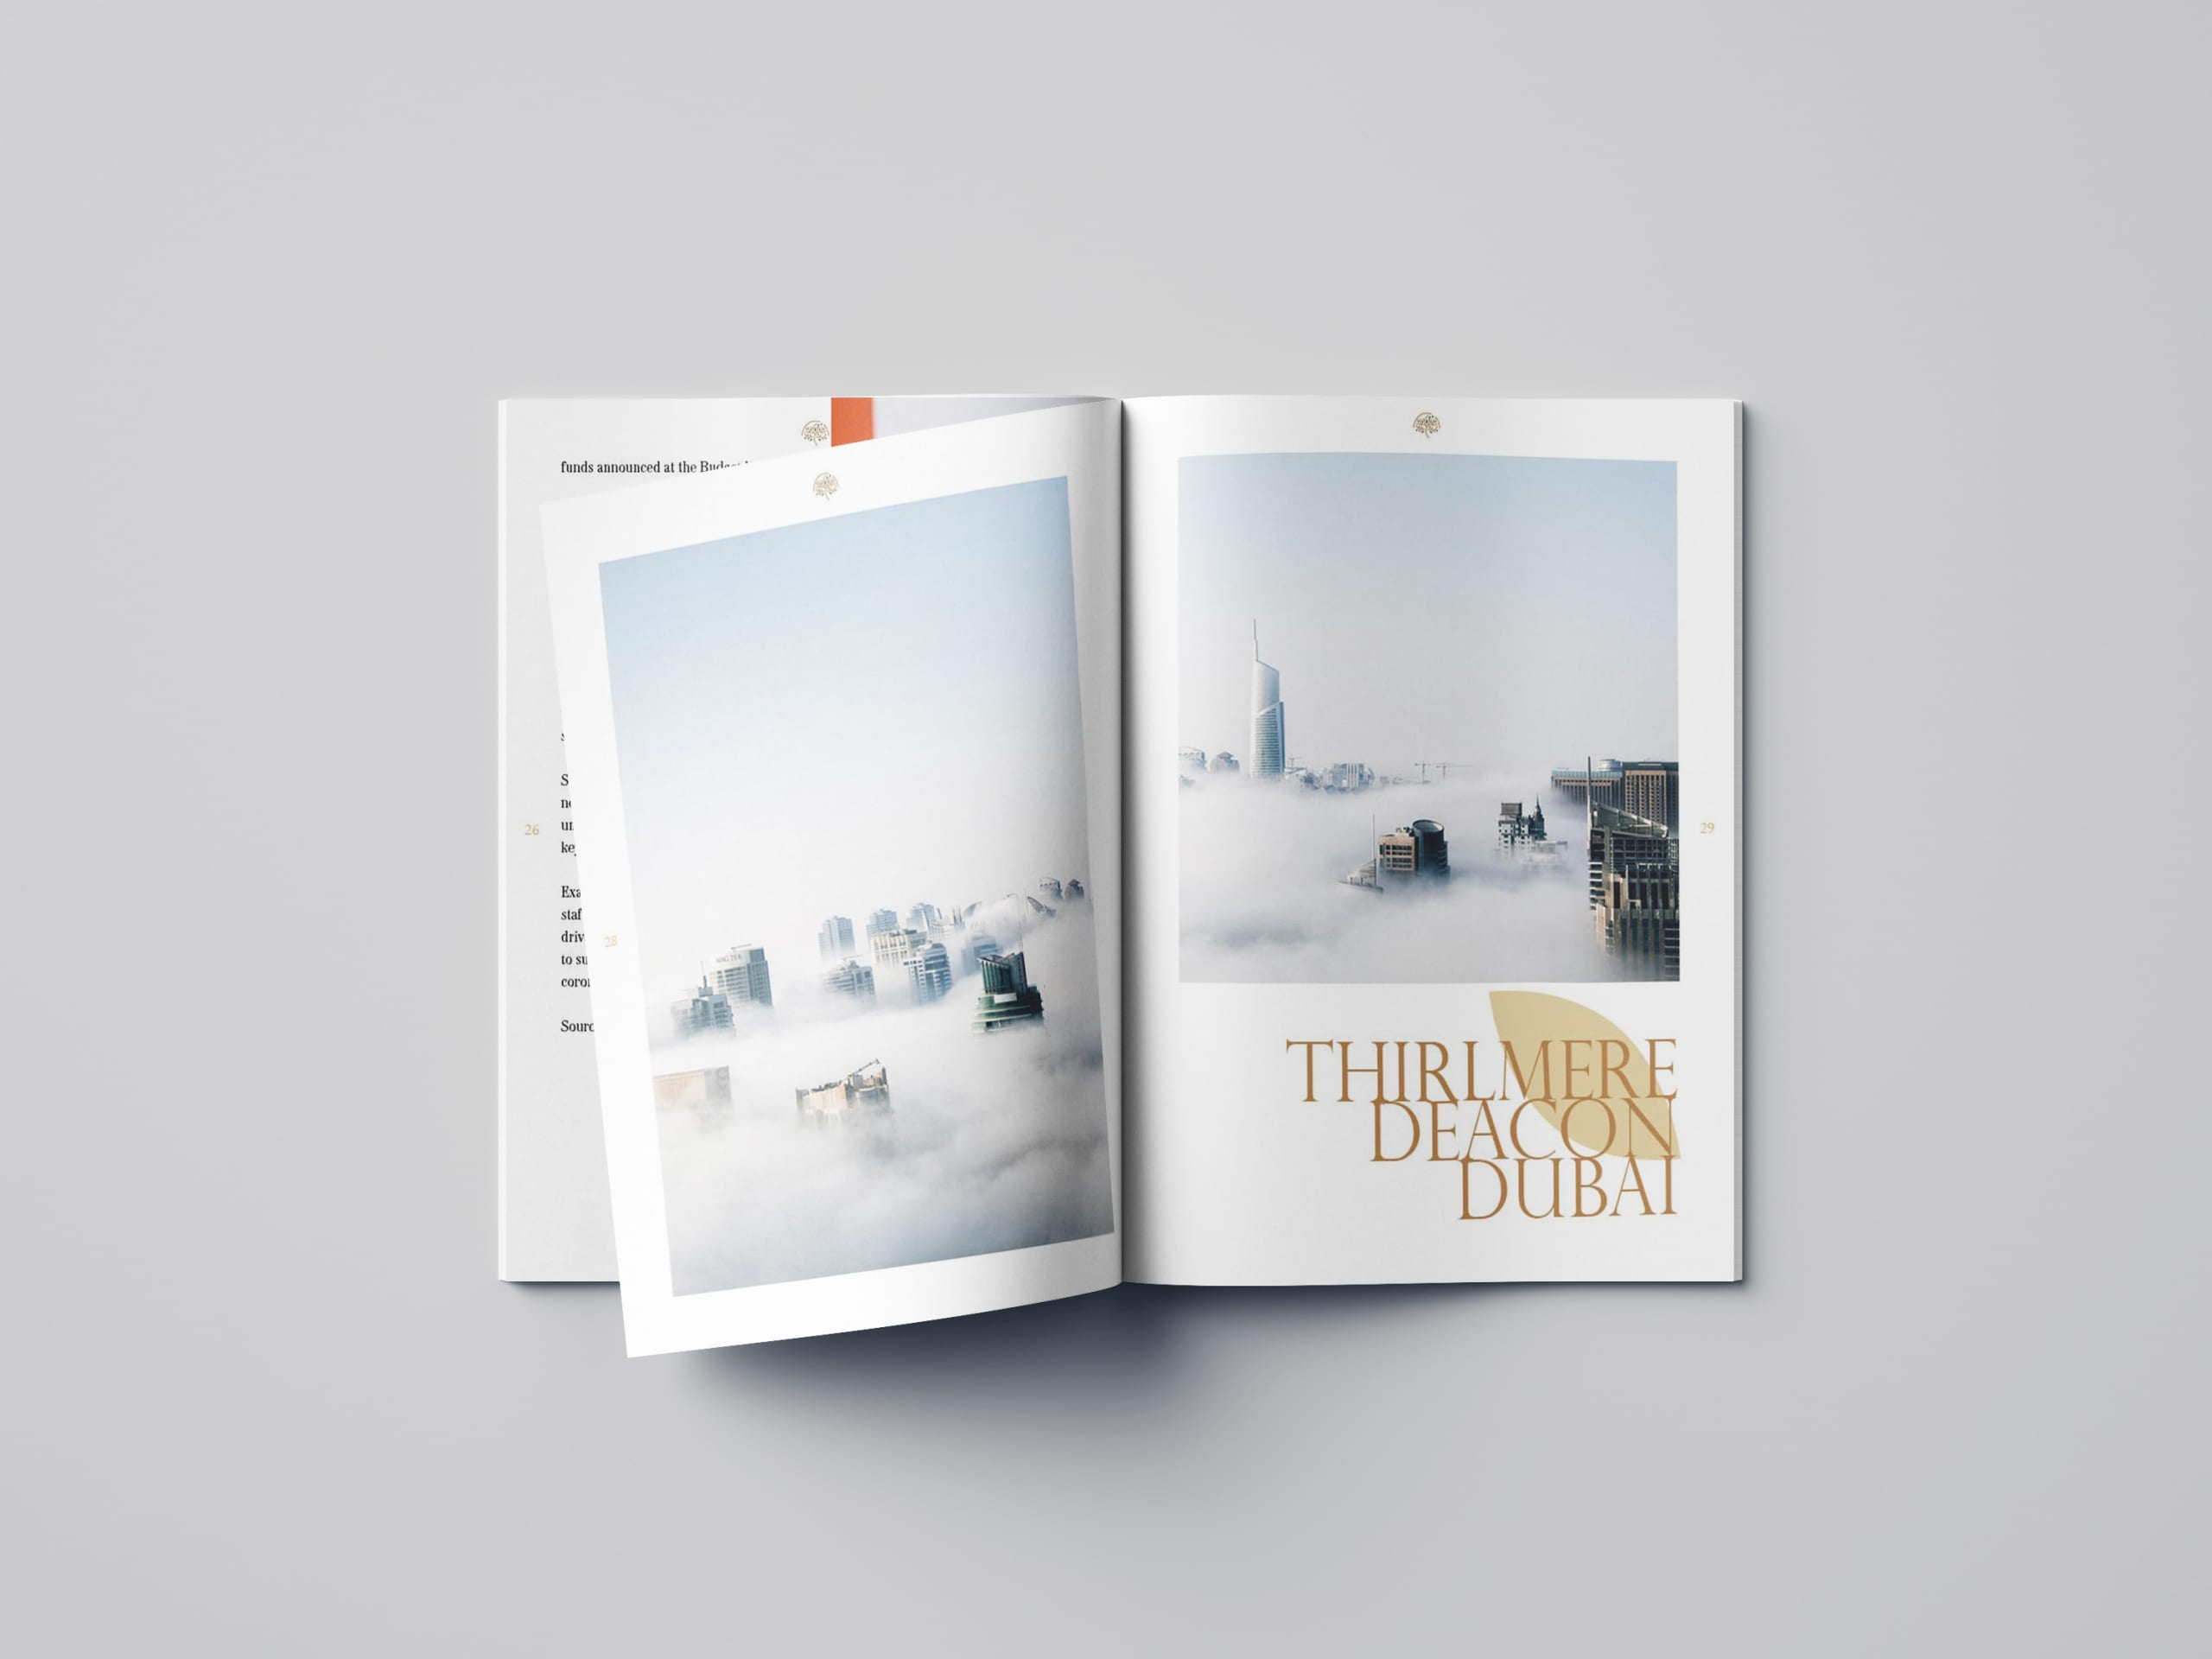 Open pages of the TD property magazine